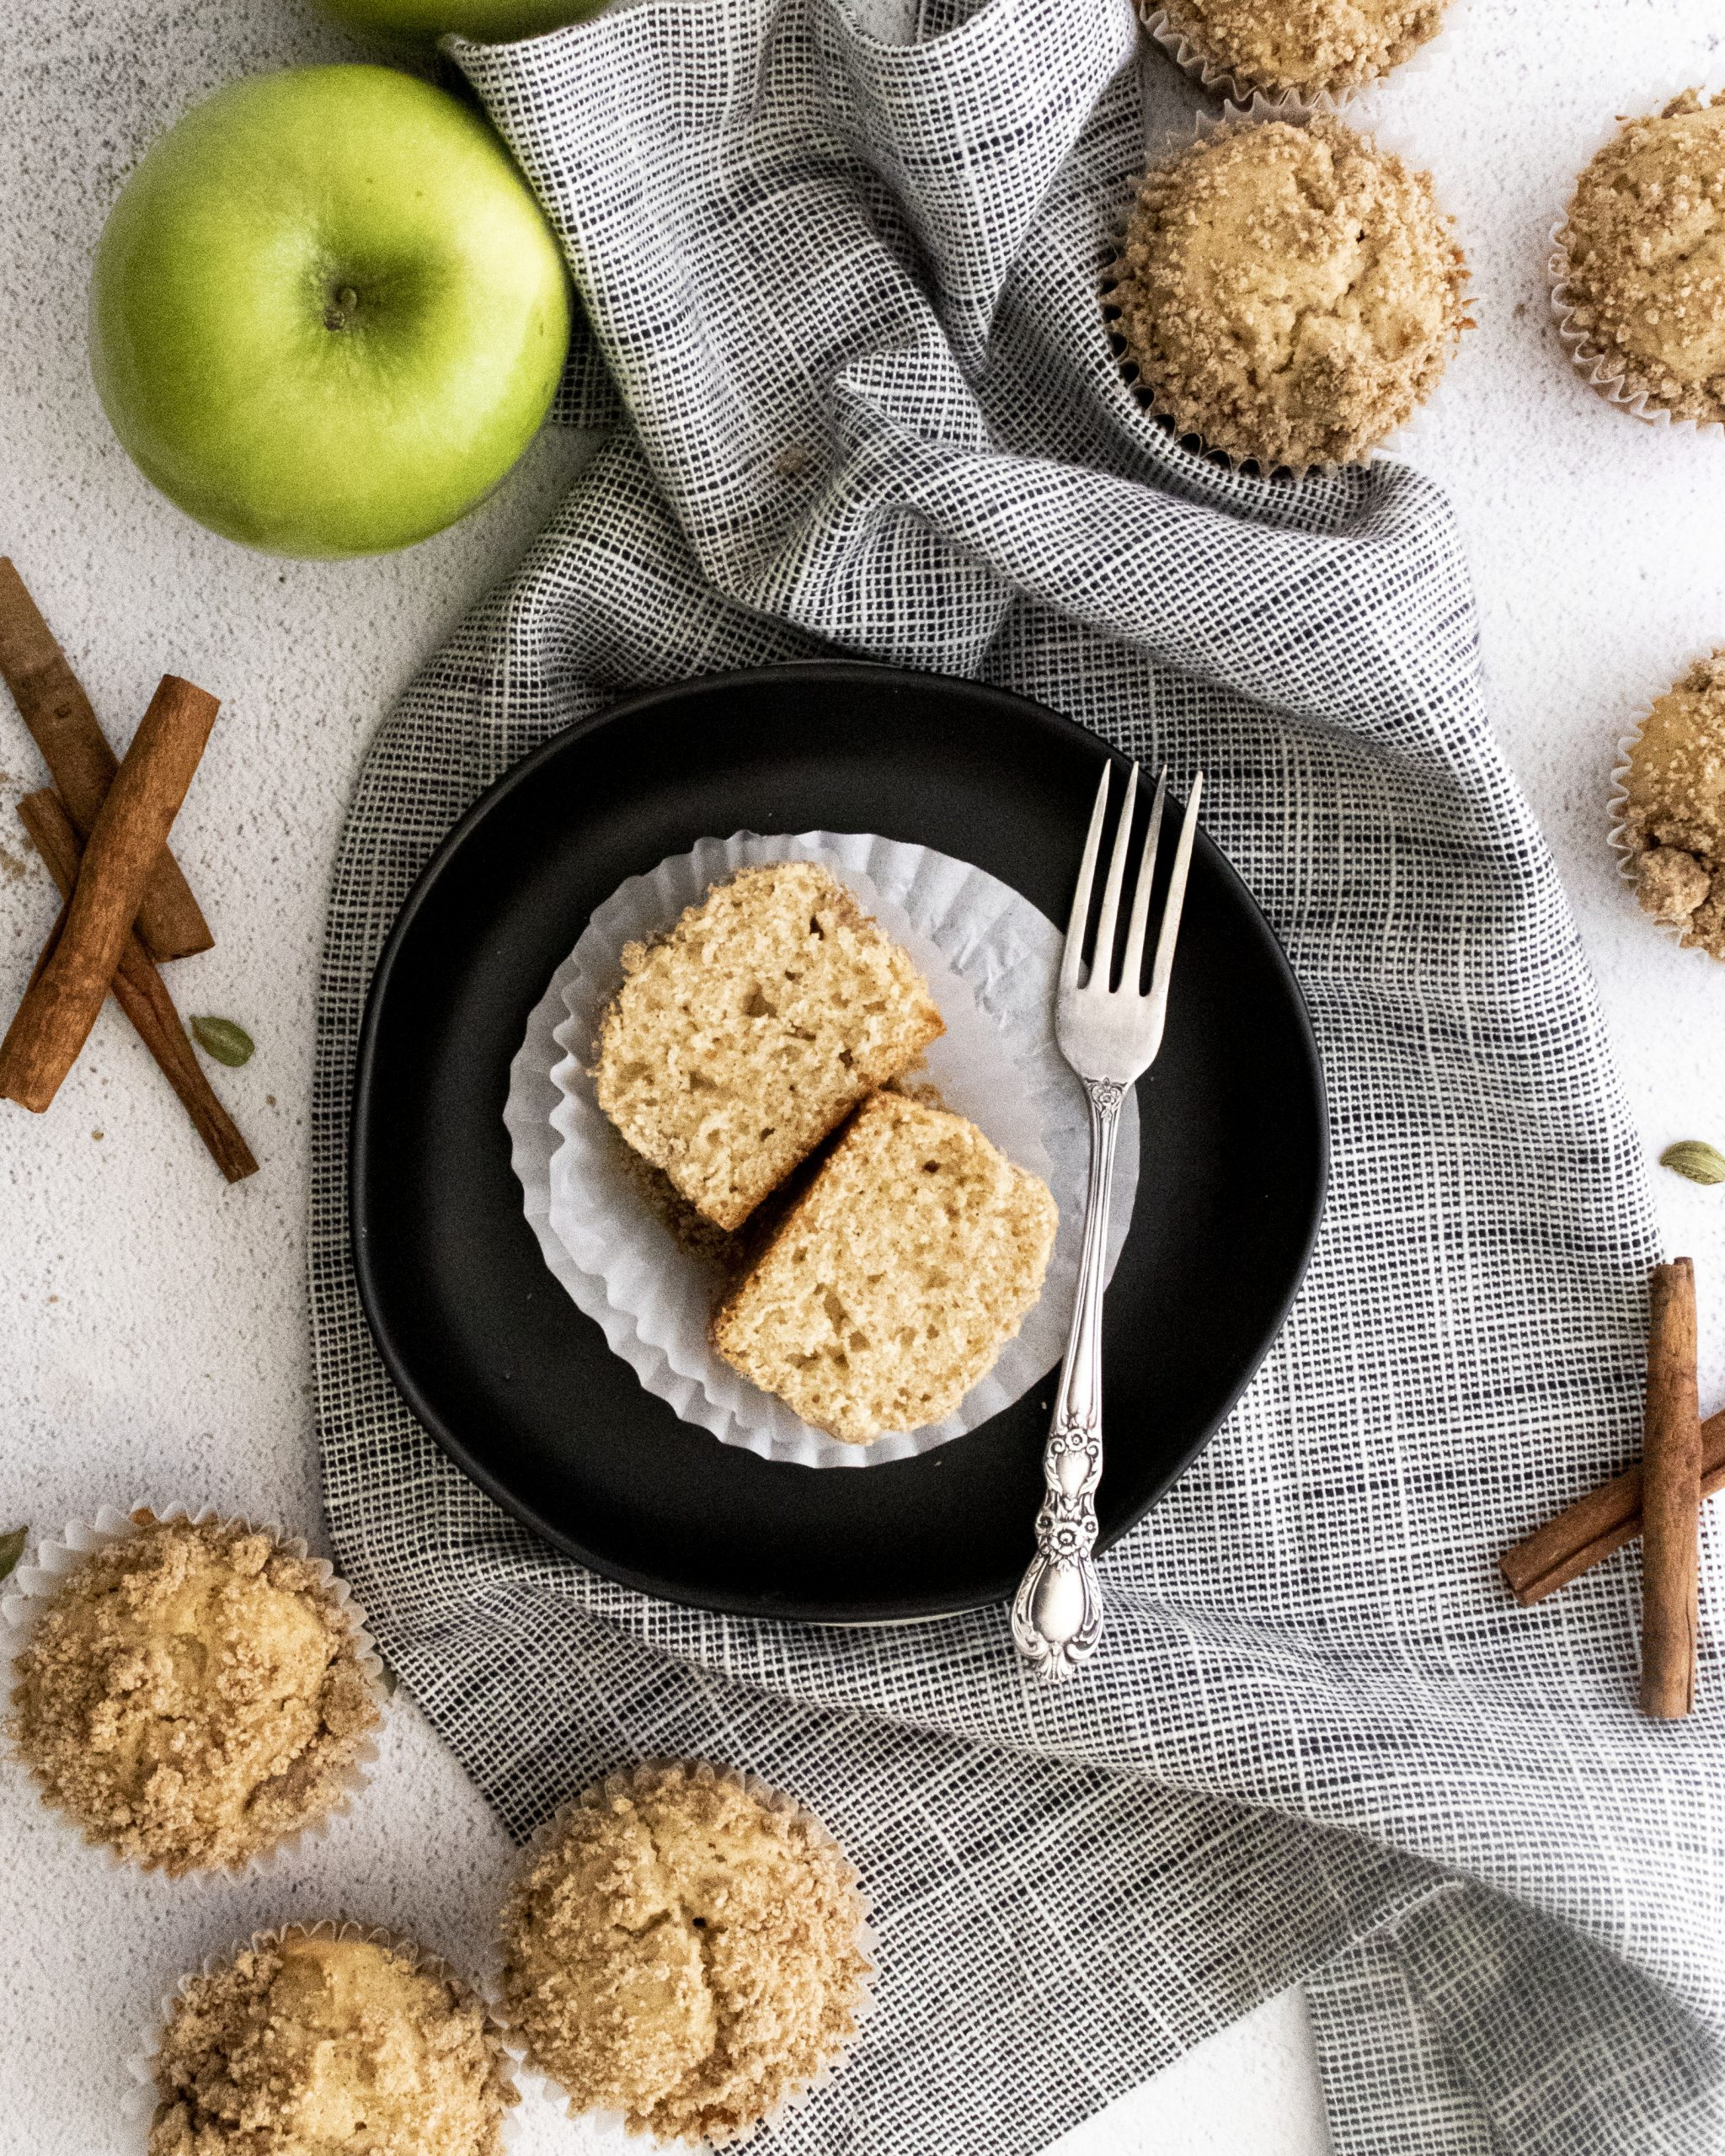 There are a few baked goods that will always remind me of fall, these amazingly good Apple Cider Muffins with Streusel are high on the list. #applemuffins #applecidermuffins #applecider #fallbakedgoods #breakfastmuffins